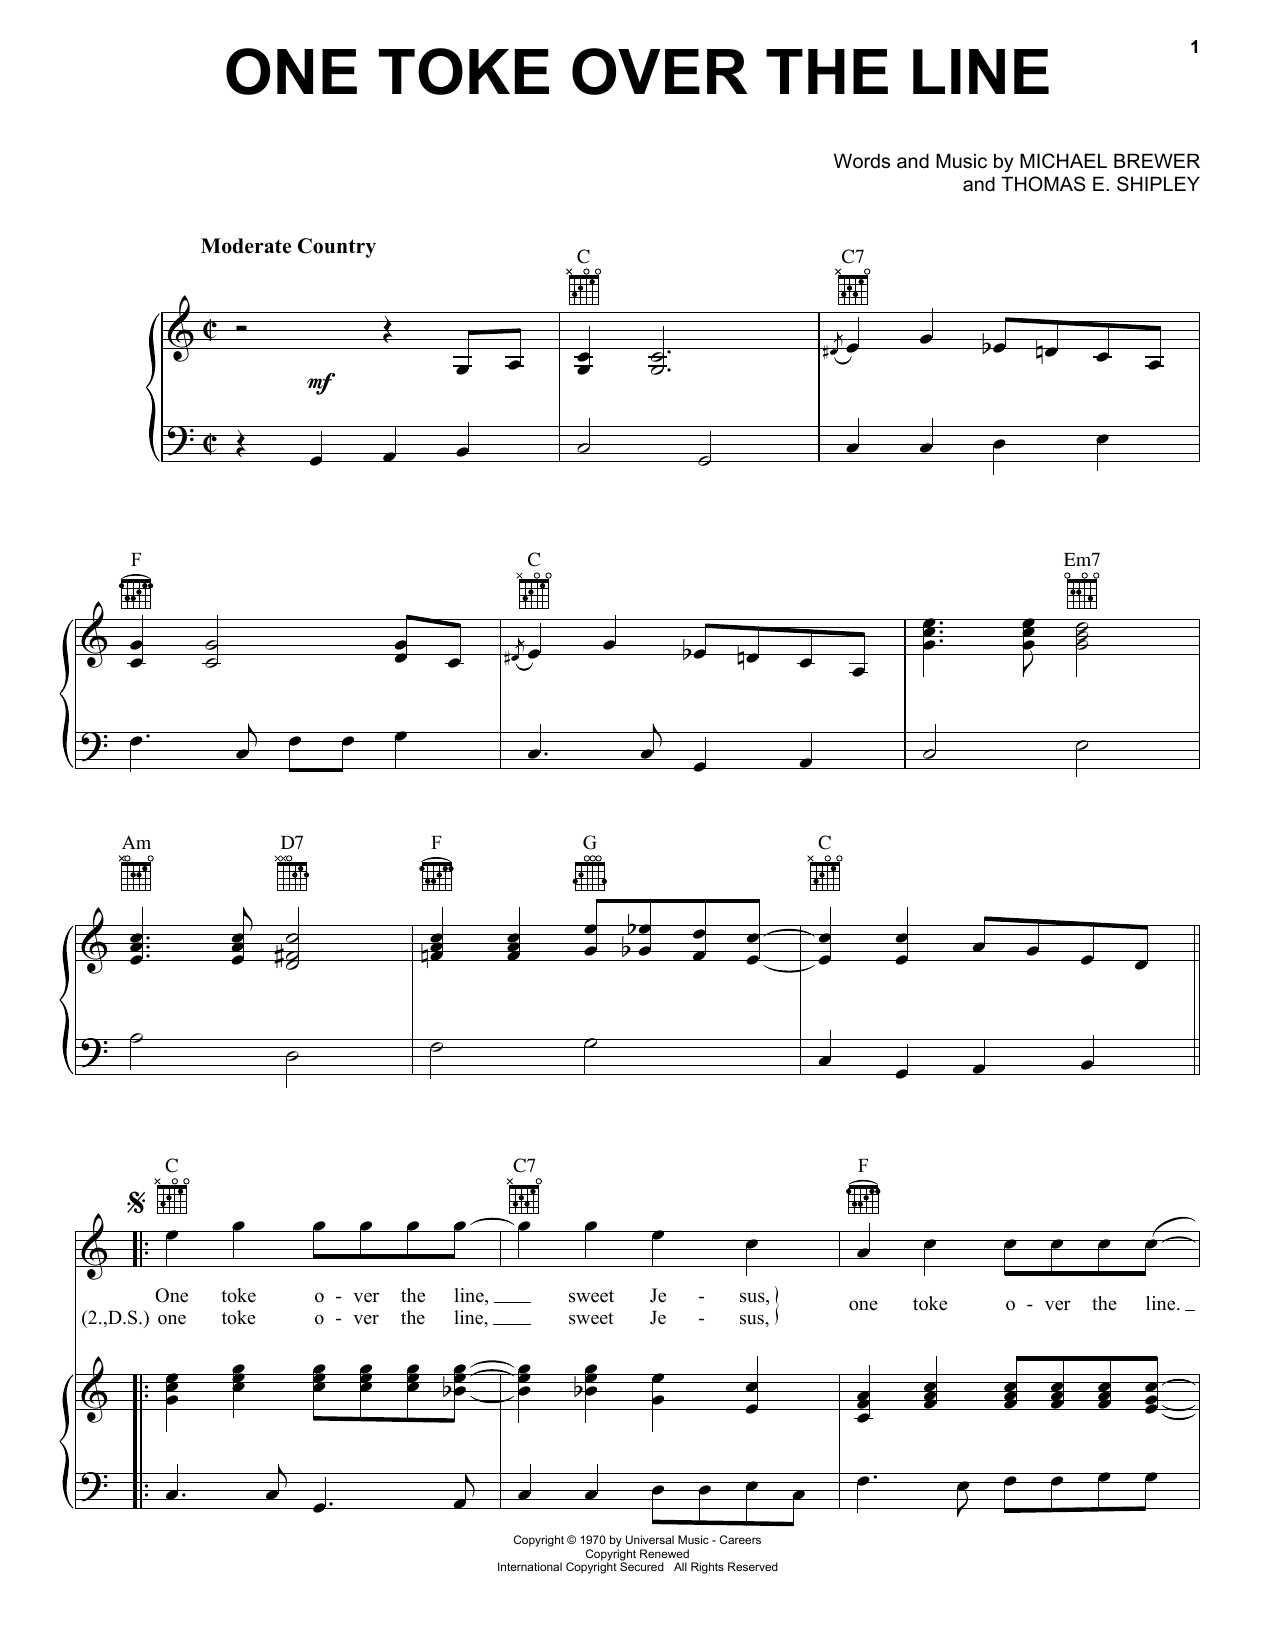 Brewer & Shipley One Toke Over The Line sheet music notes and chords. Download Printable PDF.